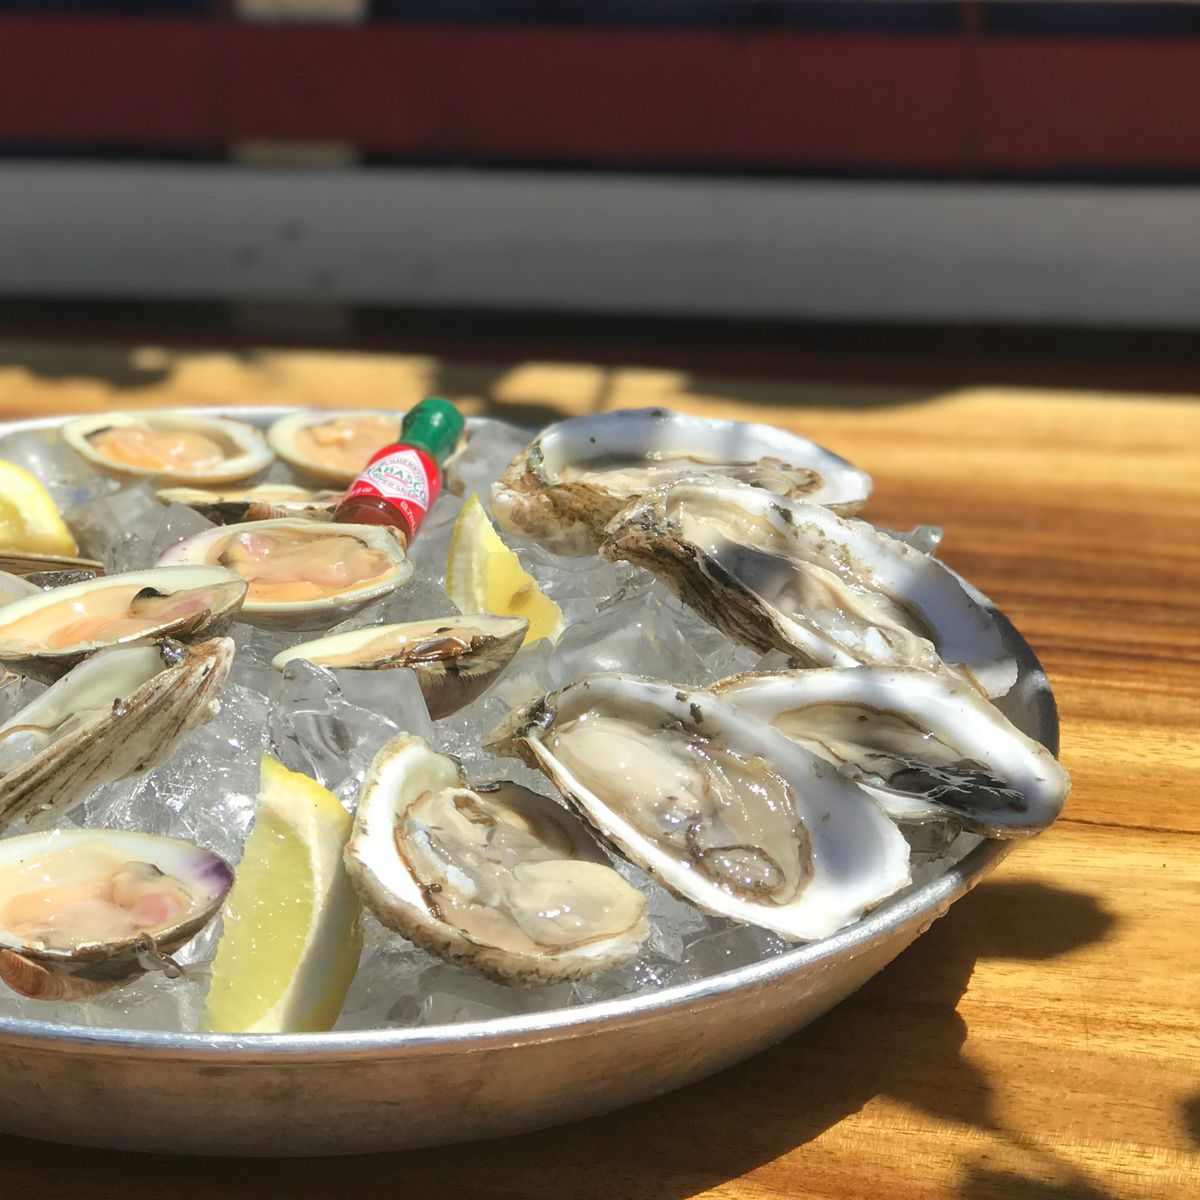 A bowl of ice topped with oysters in their shell with a bottle of tobasco sauce in the middle